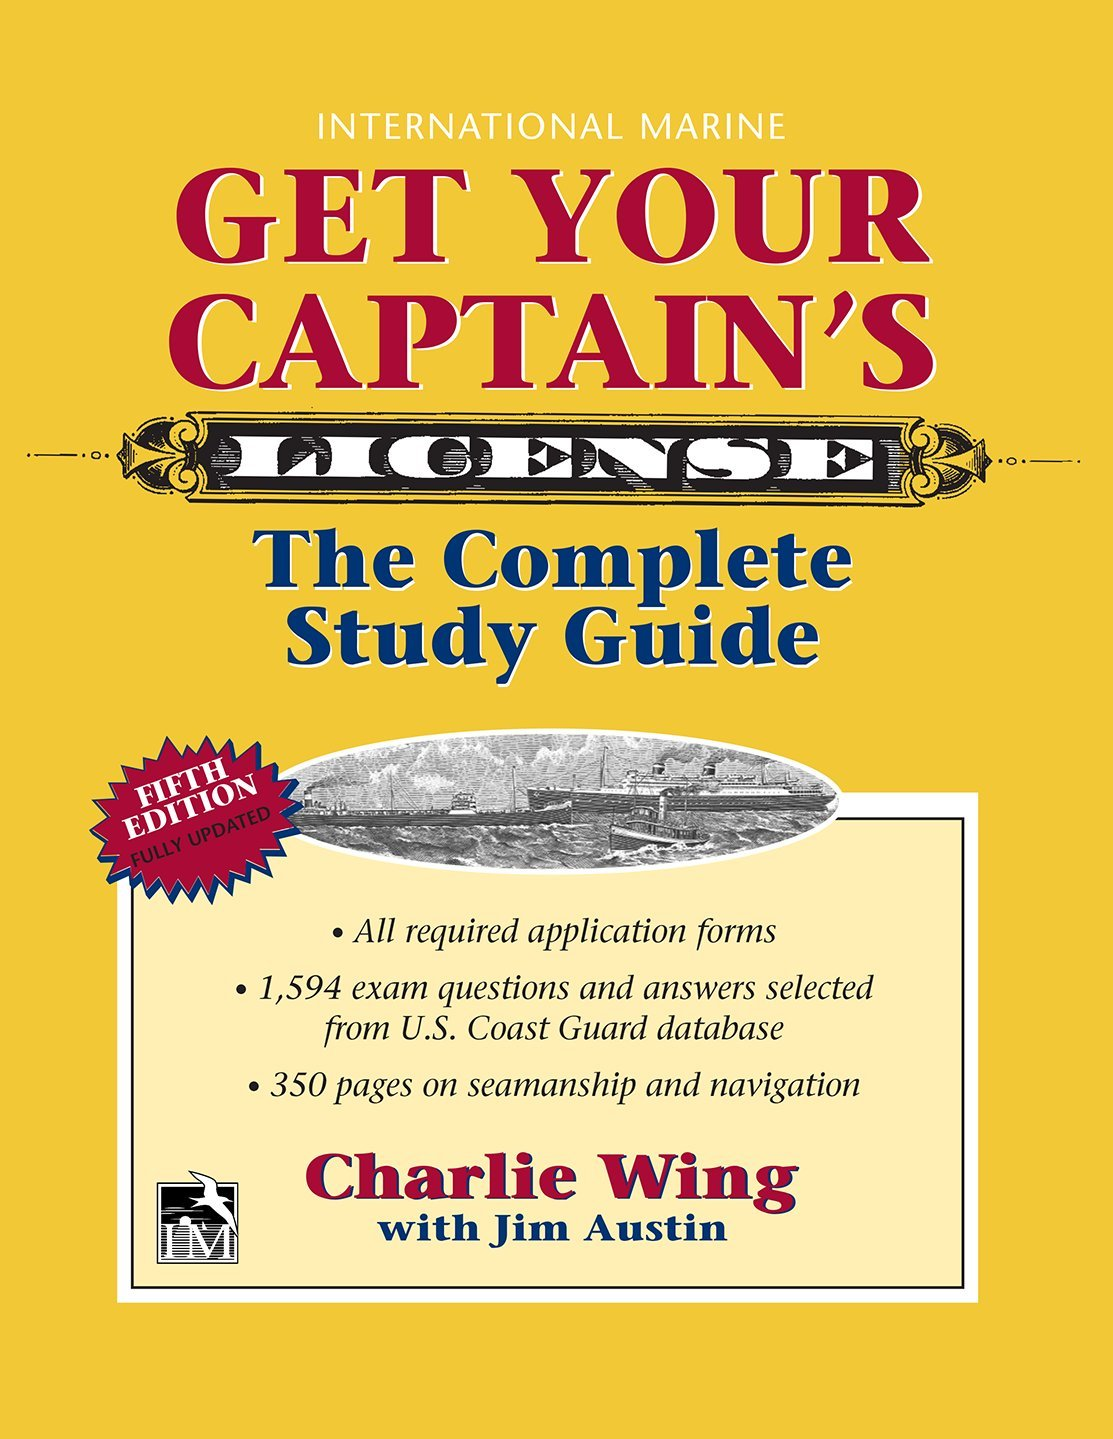 Get Your Captains License 5th Charlie Wing 9780071848374 Amazon